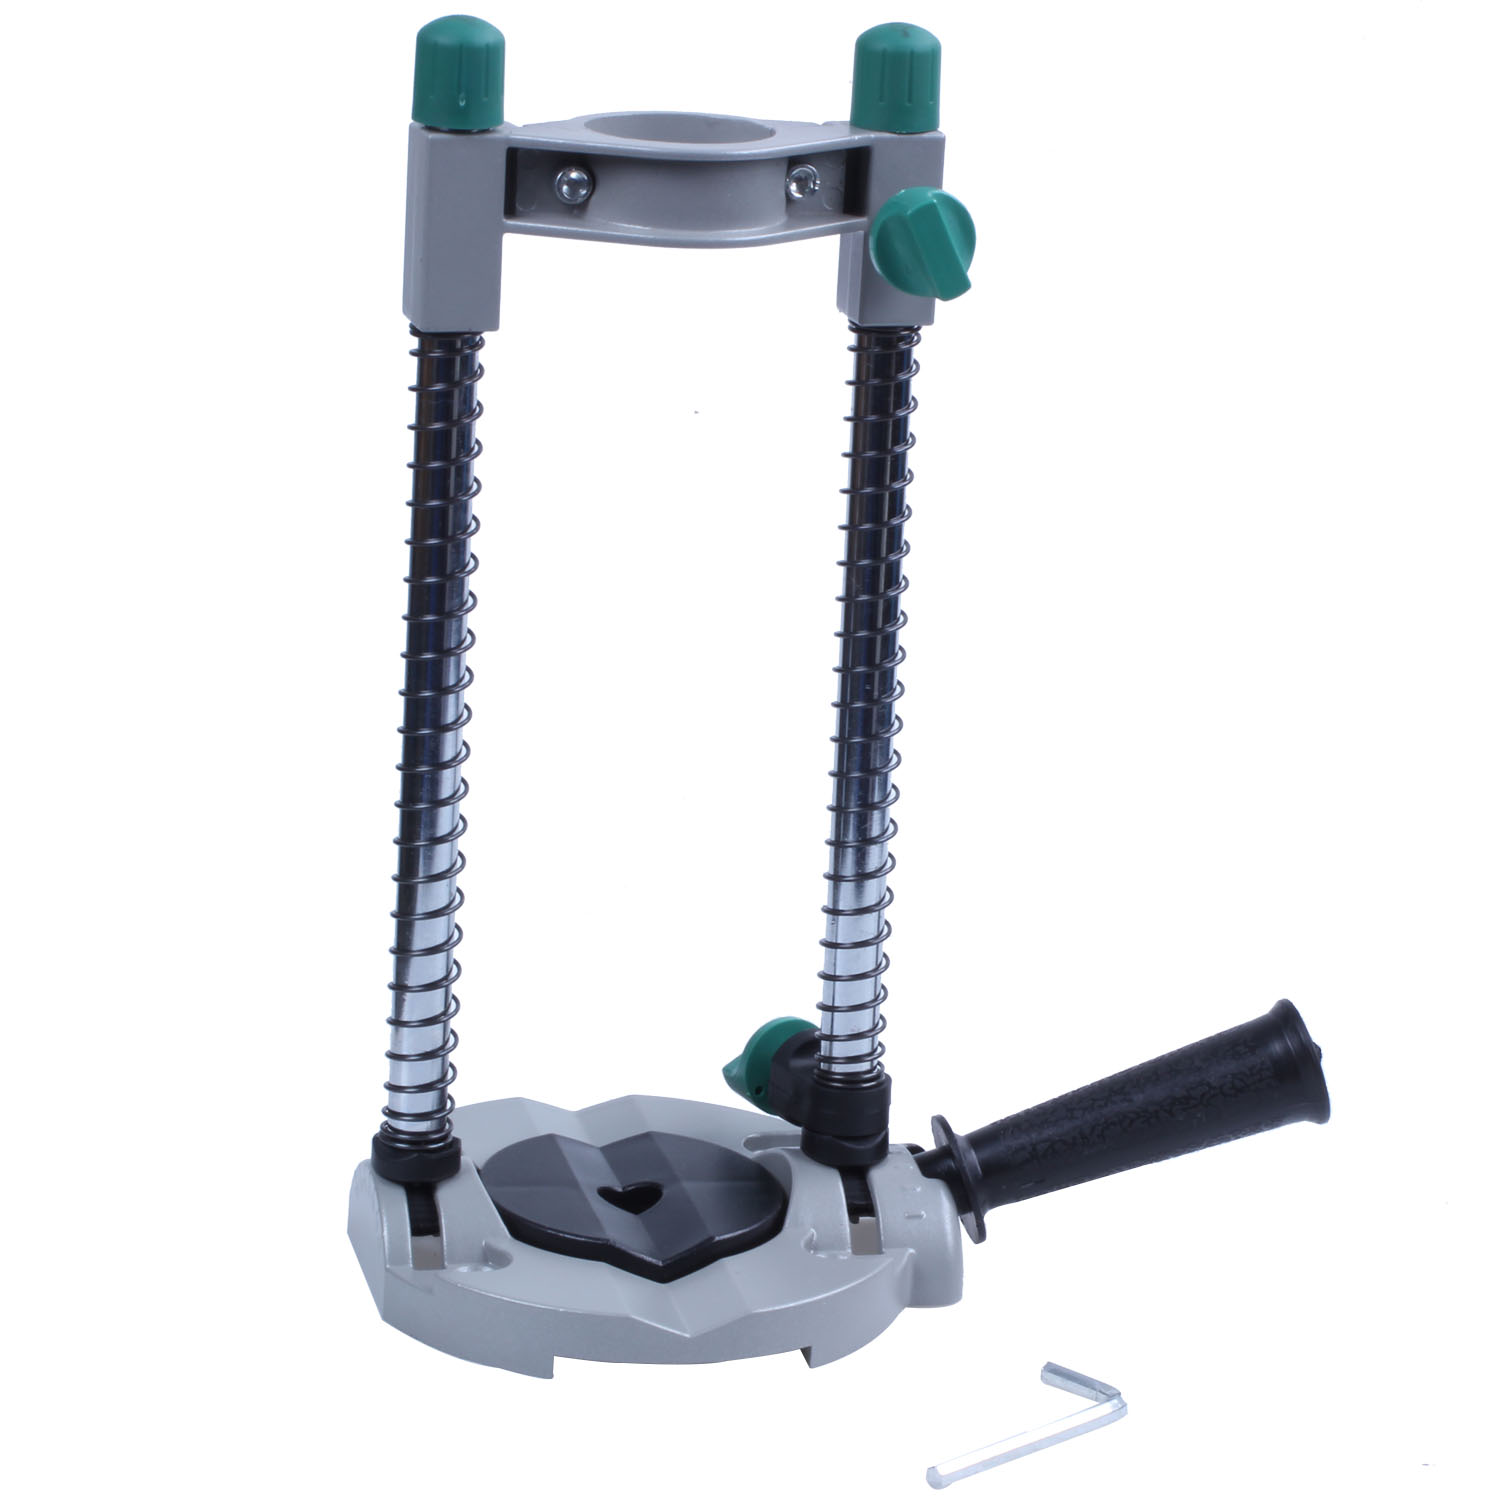 Precision Drill Guide Pipe Drill Holder Stand Drilling Guide with Adjustable Angle and Removable Handle DIY